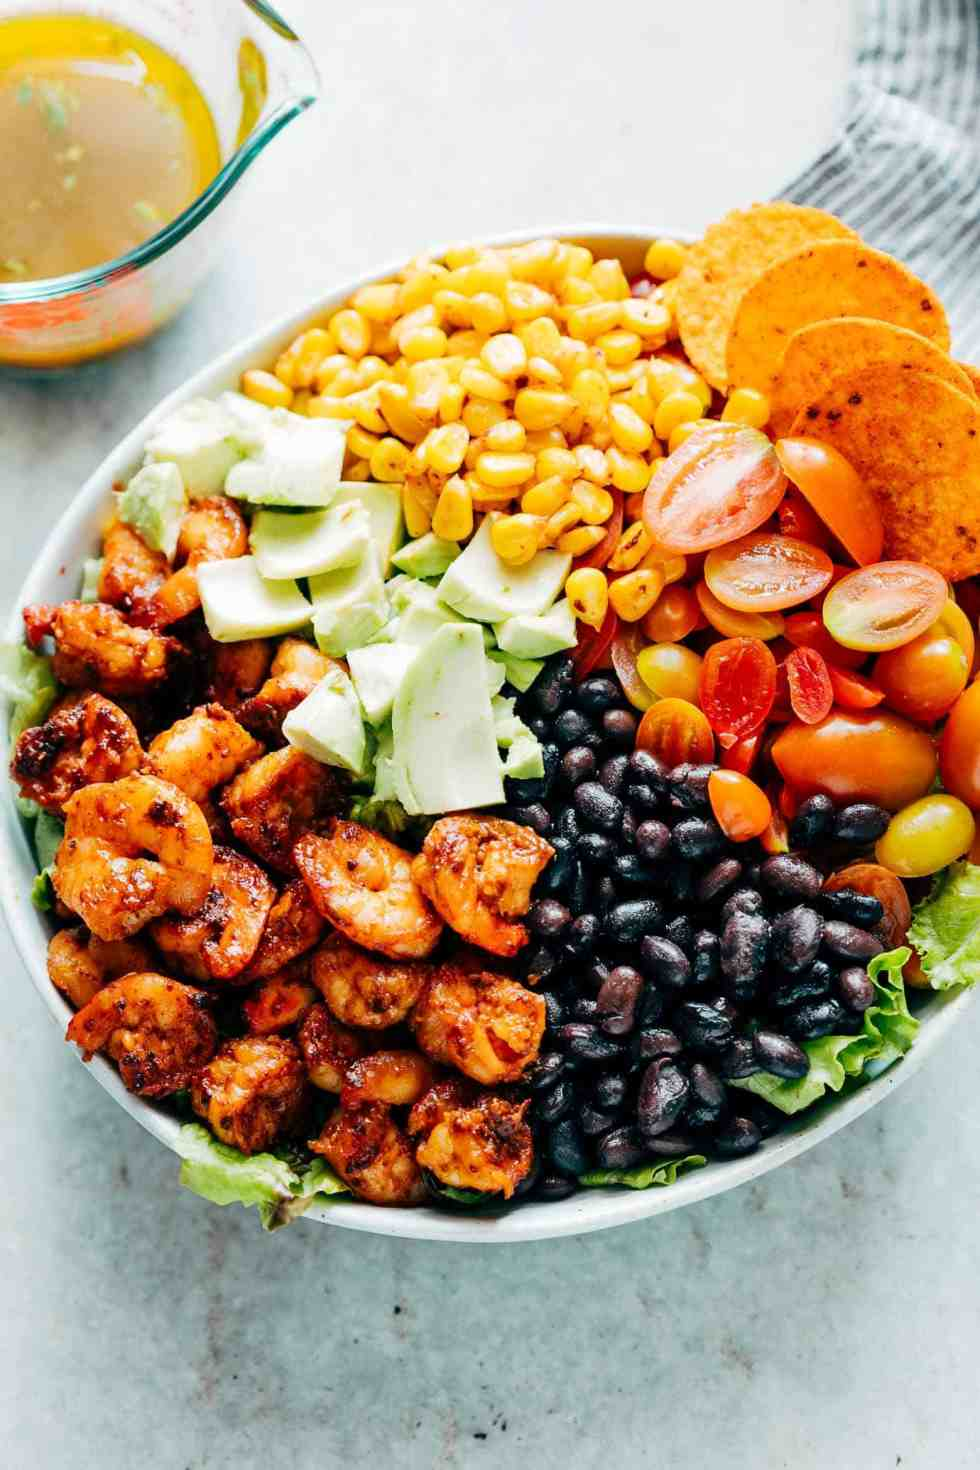 Mexican Prawn Avocado Taco Salad is a delicious, hearty salad that has all the flavours of your favourite mexican taco, but healthier. Loaded with lettuce, black beans, avocado, cherry tomatoes and a delicious cilantro lime dressing, it's perfect when you want salad for dinner.